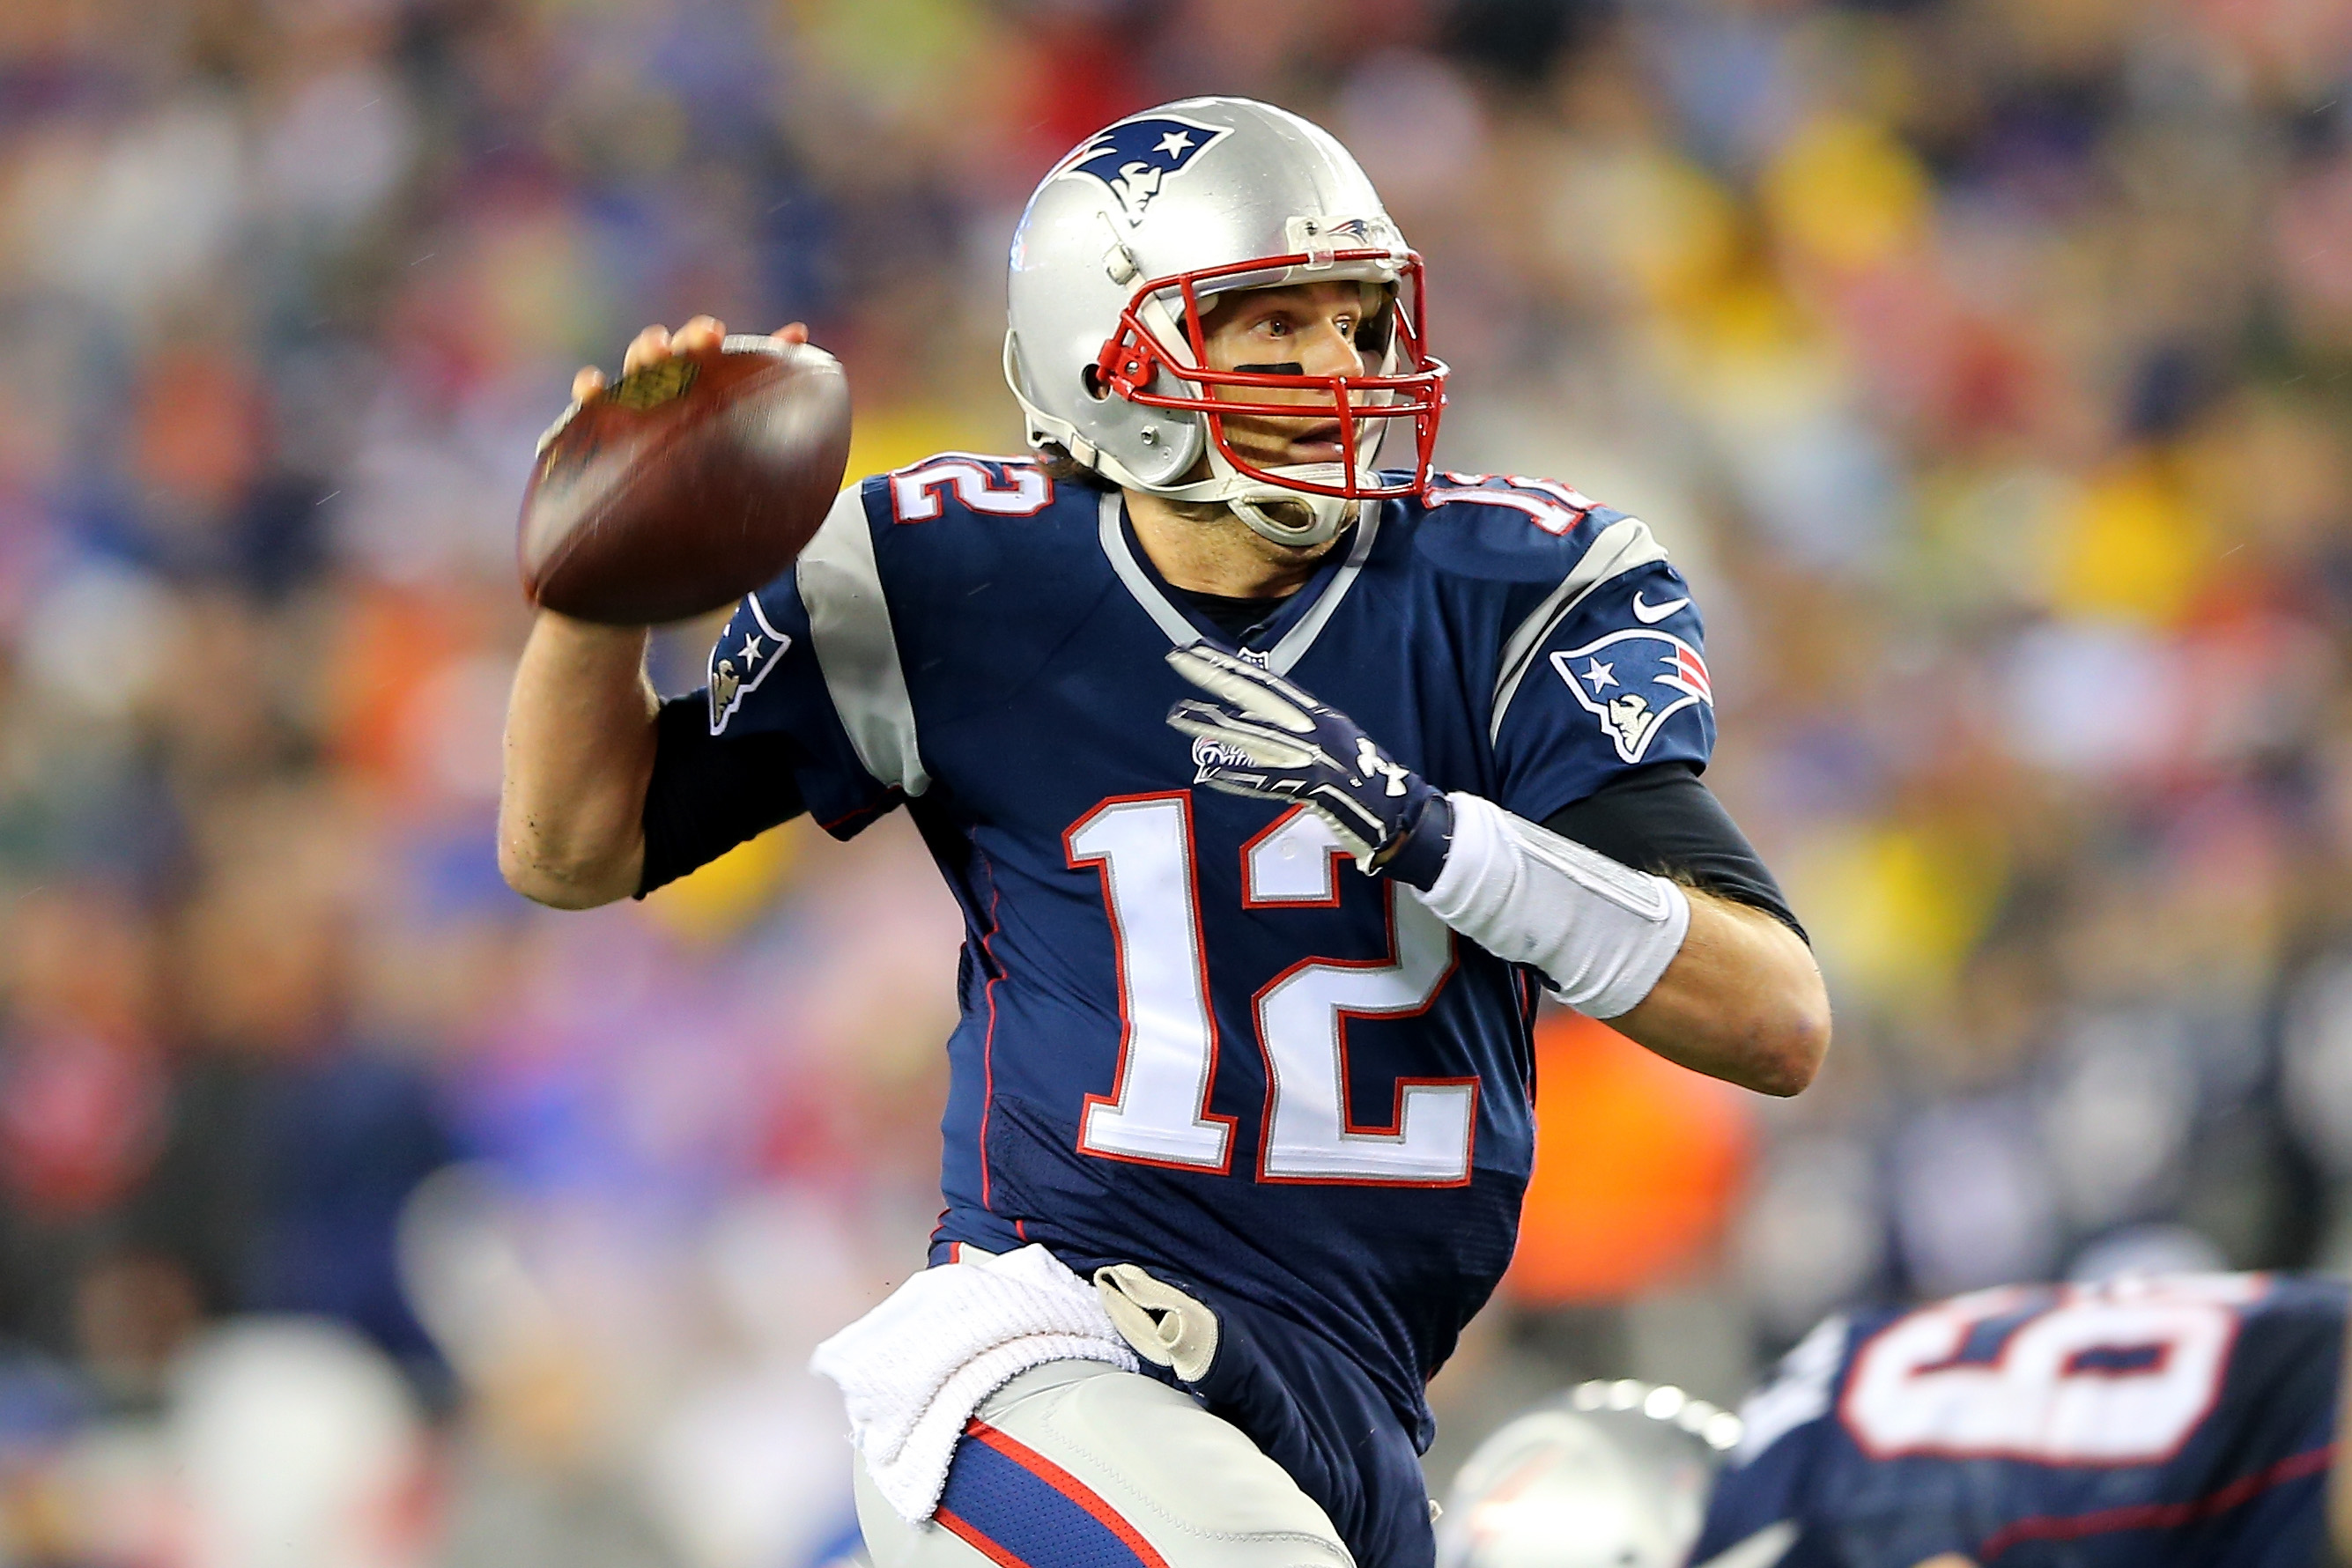 Tom Brady #12 of the New England Patriots in action against the Indianapolis Colts of the 2015 AFC Championship Game at Gillette Stadium on January 18, 2015 in Foxboro, Massachusetts.